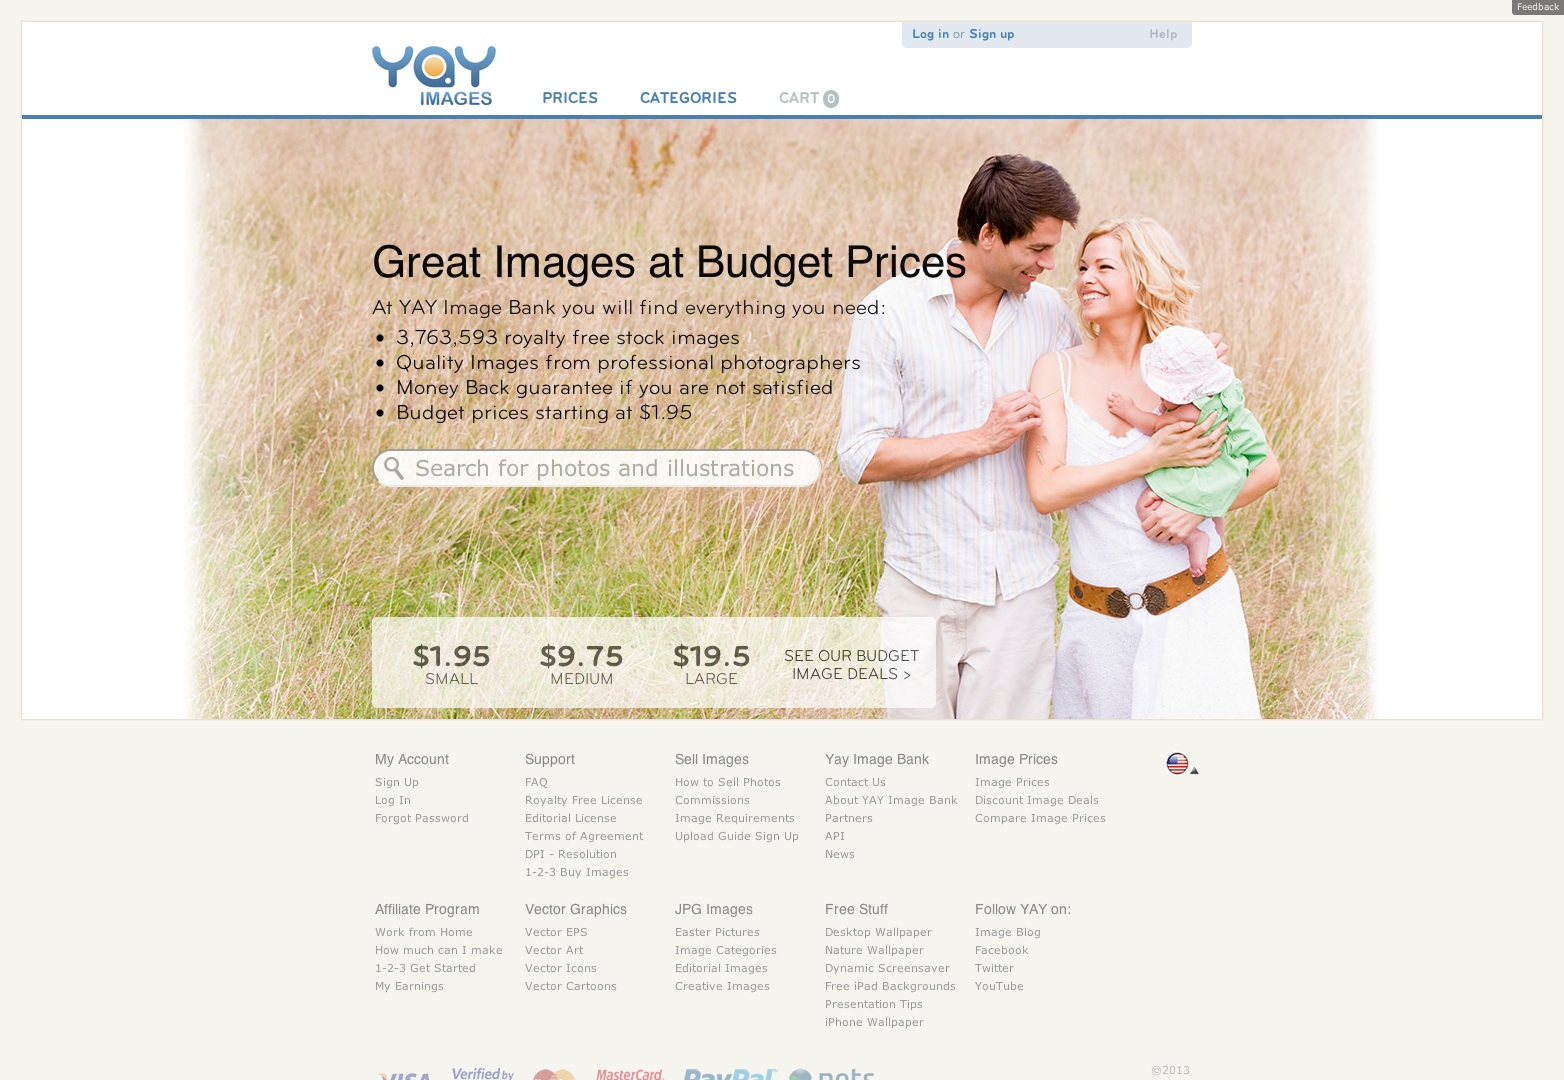 YAY - Quality Stock Images & Illustrations from only $1.95